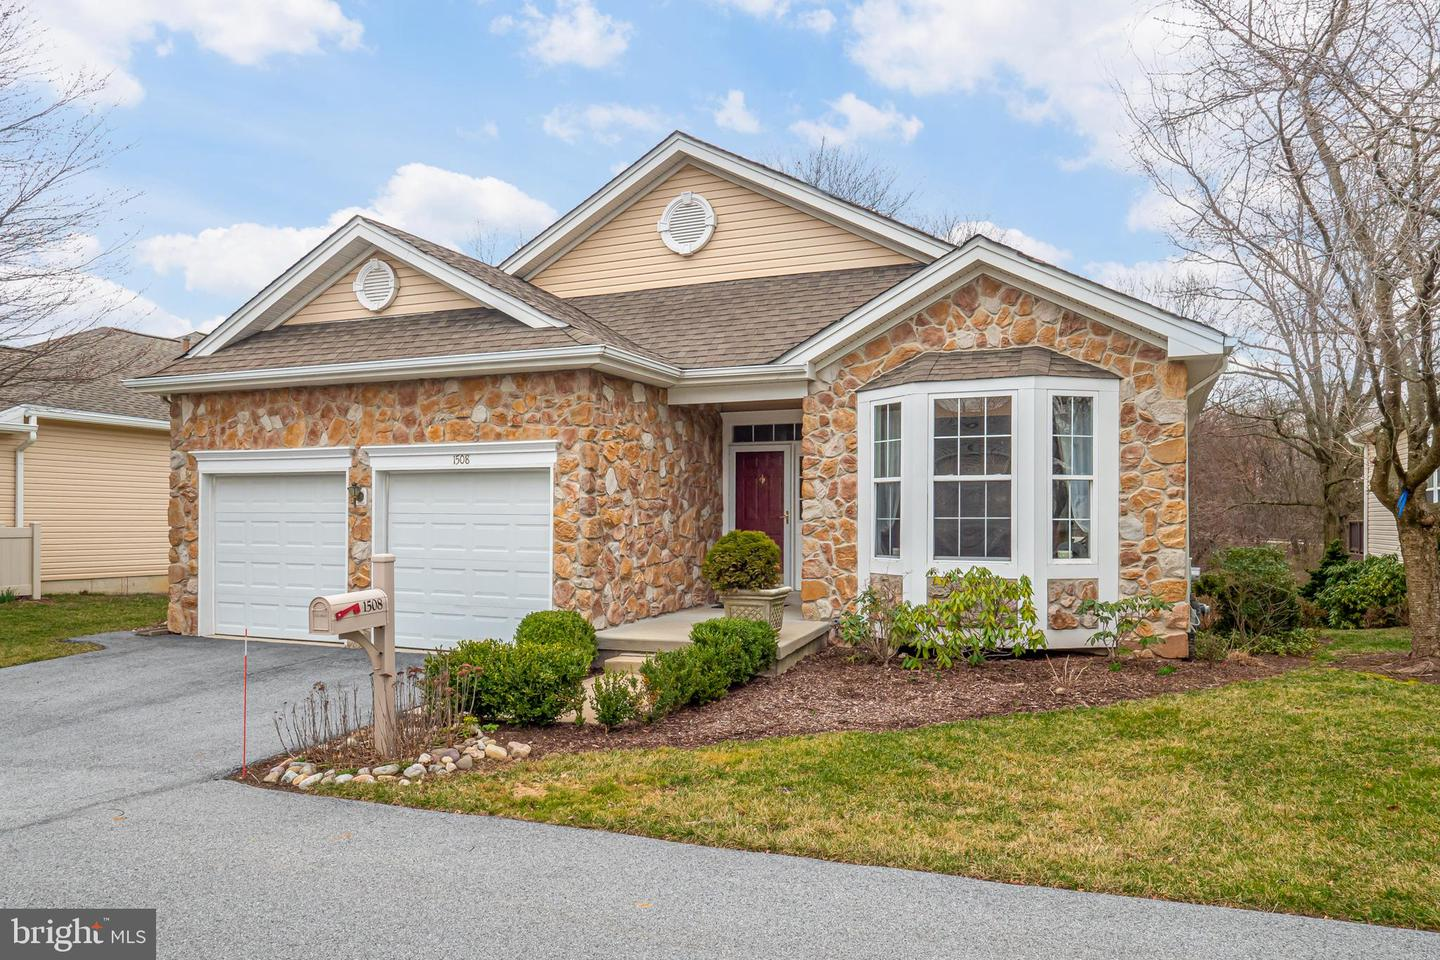 1508 Ulster Way West Chester, PA 19380